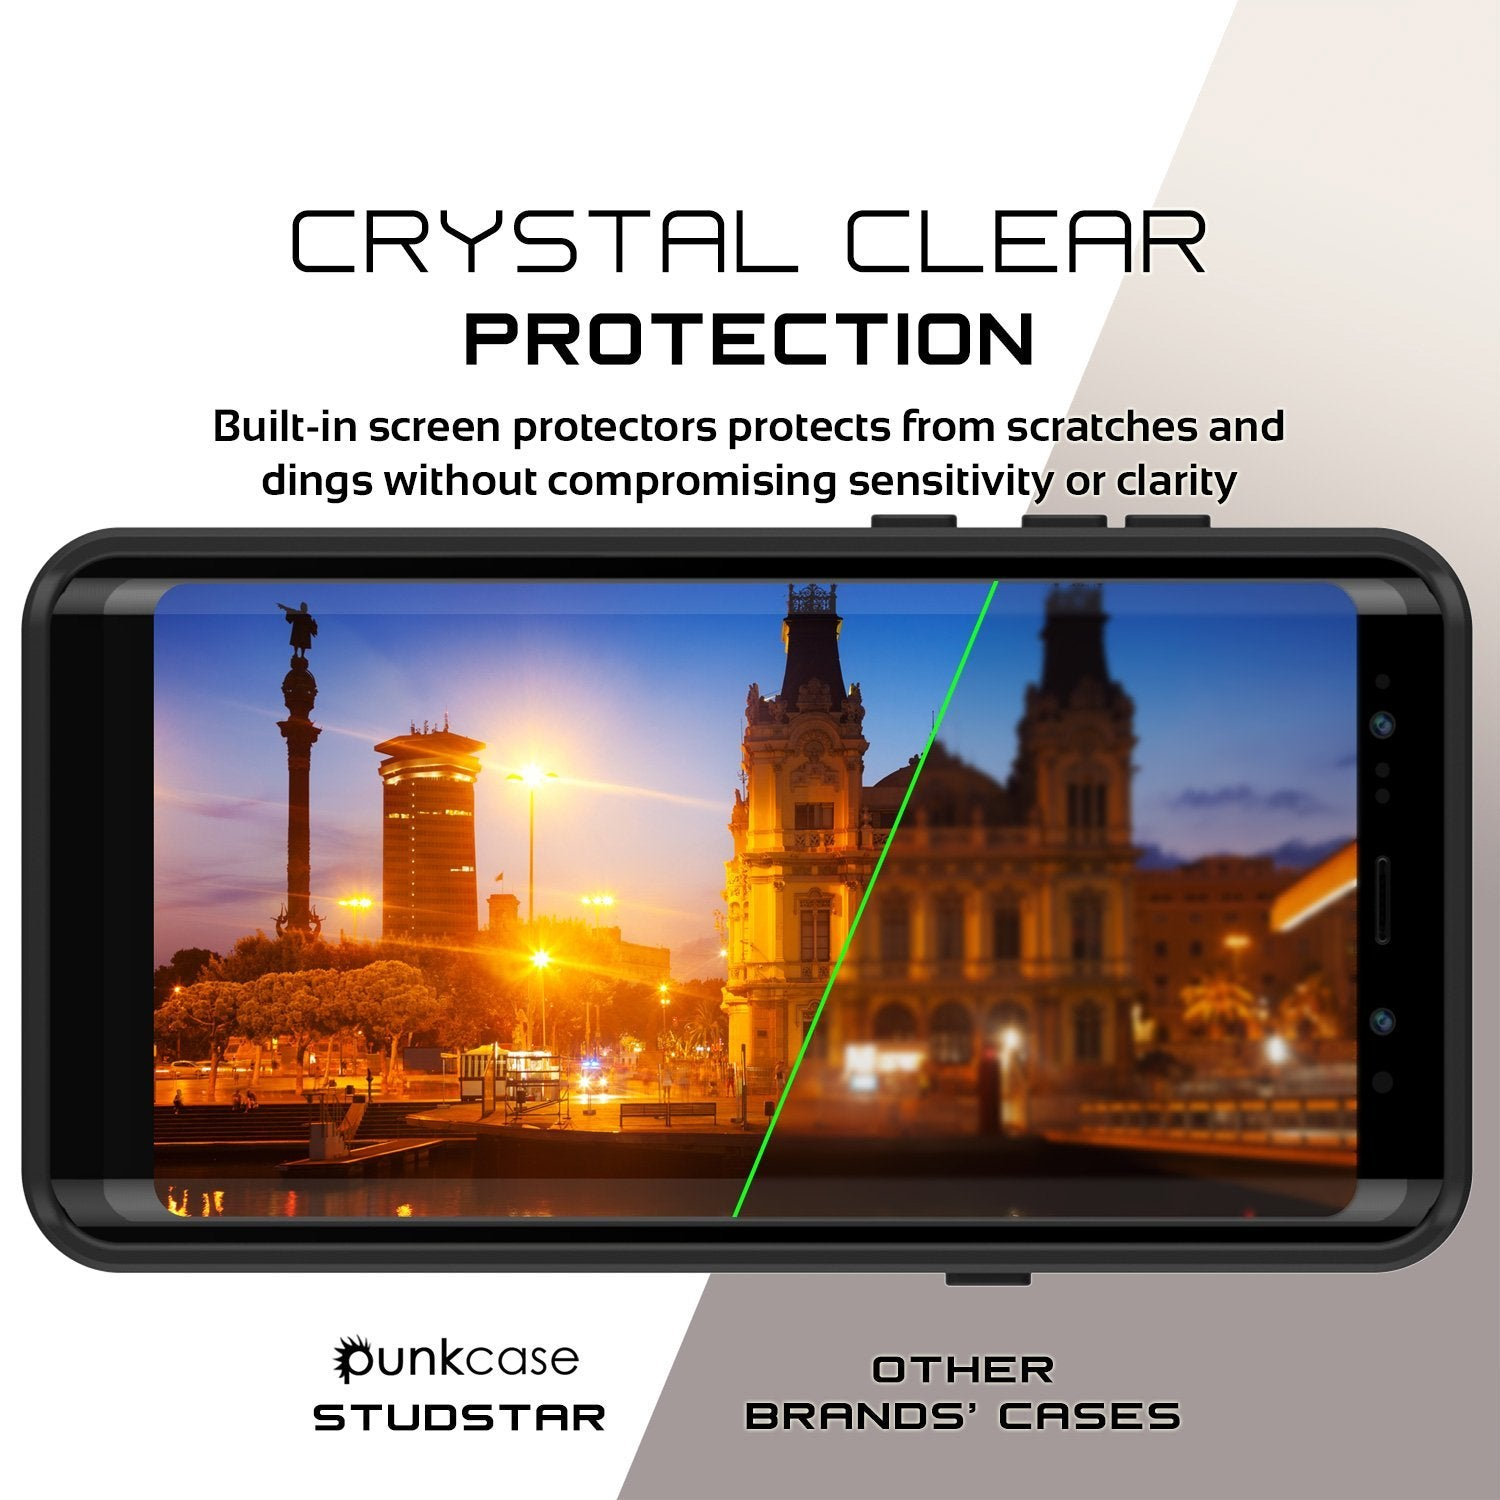 Galaxy Note 8 Waterproof Case, PunkСase StudStar White Thin 6.6ft Underwater IP68 Shock/Snow Proof